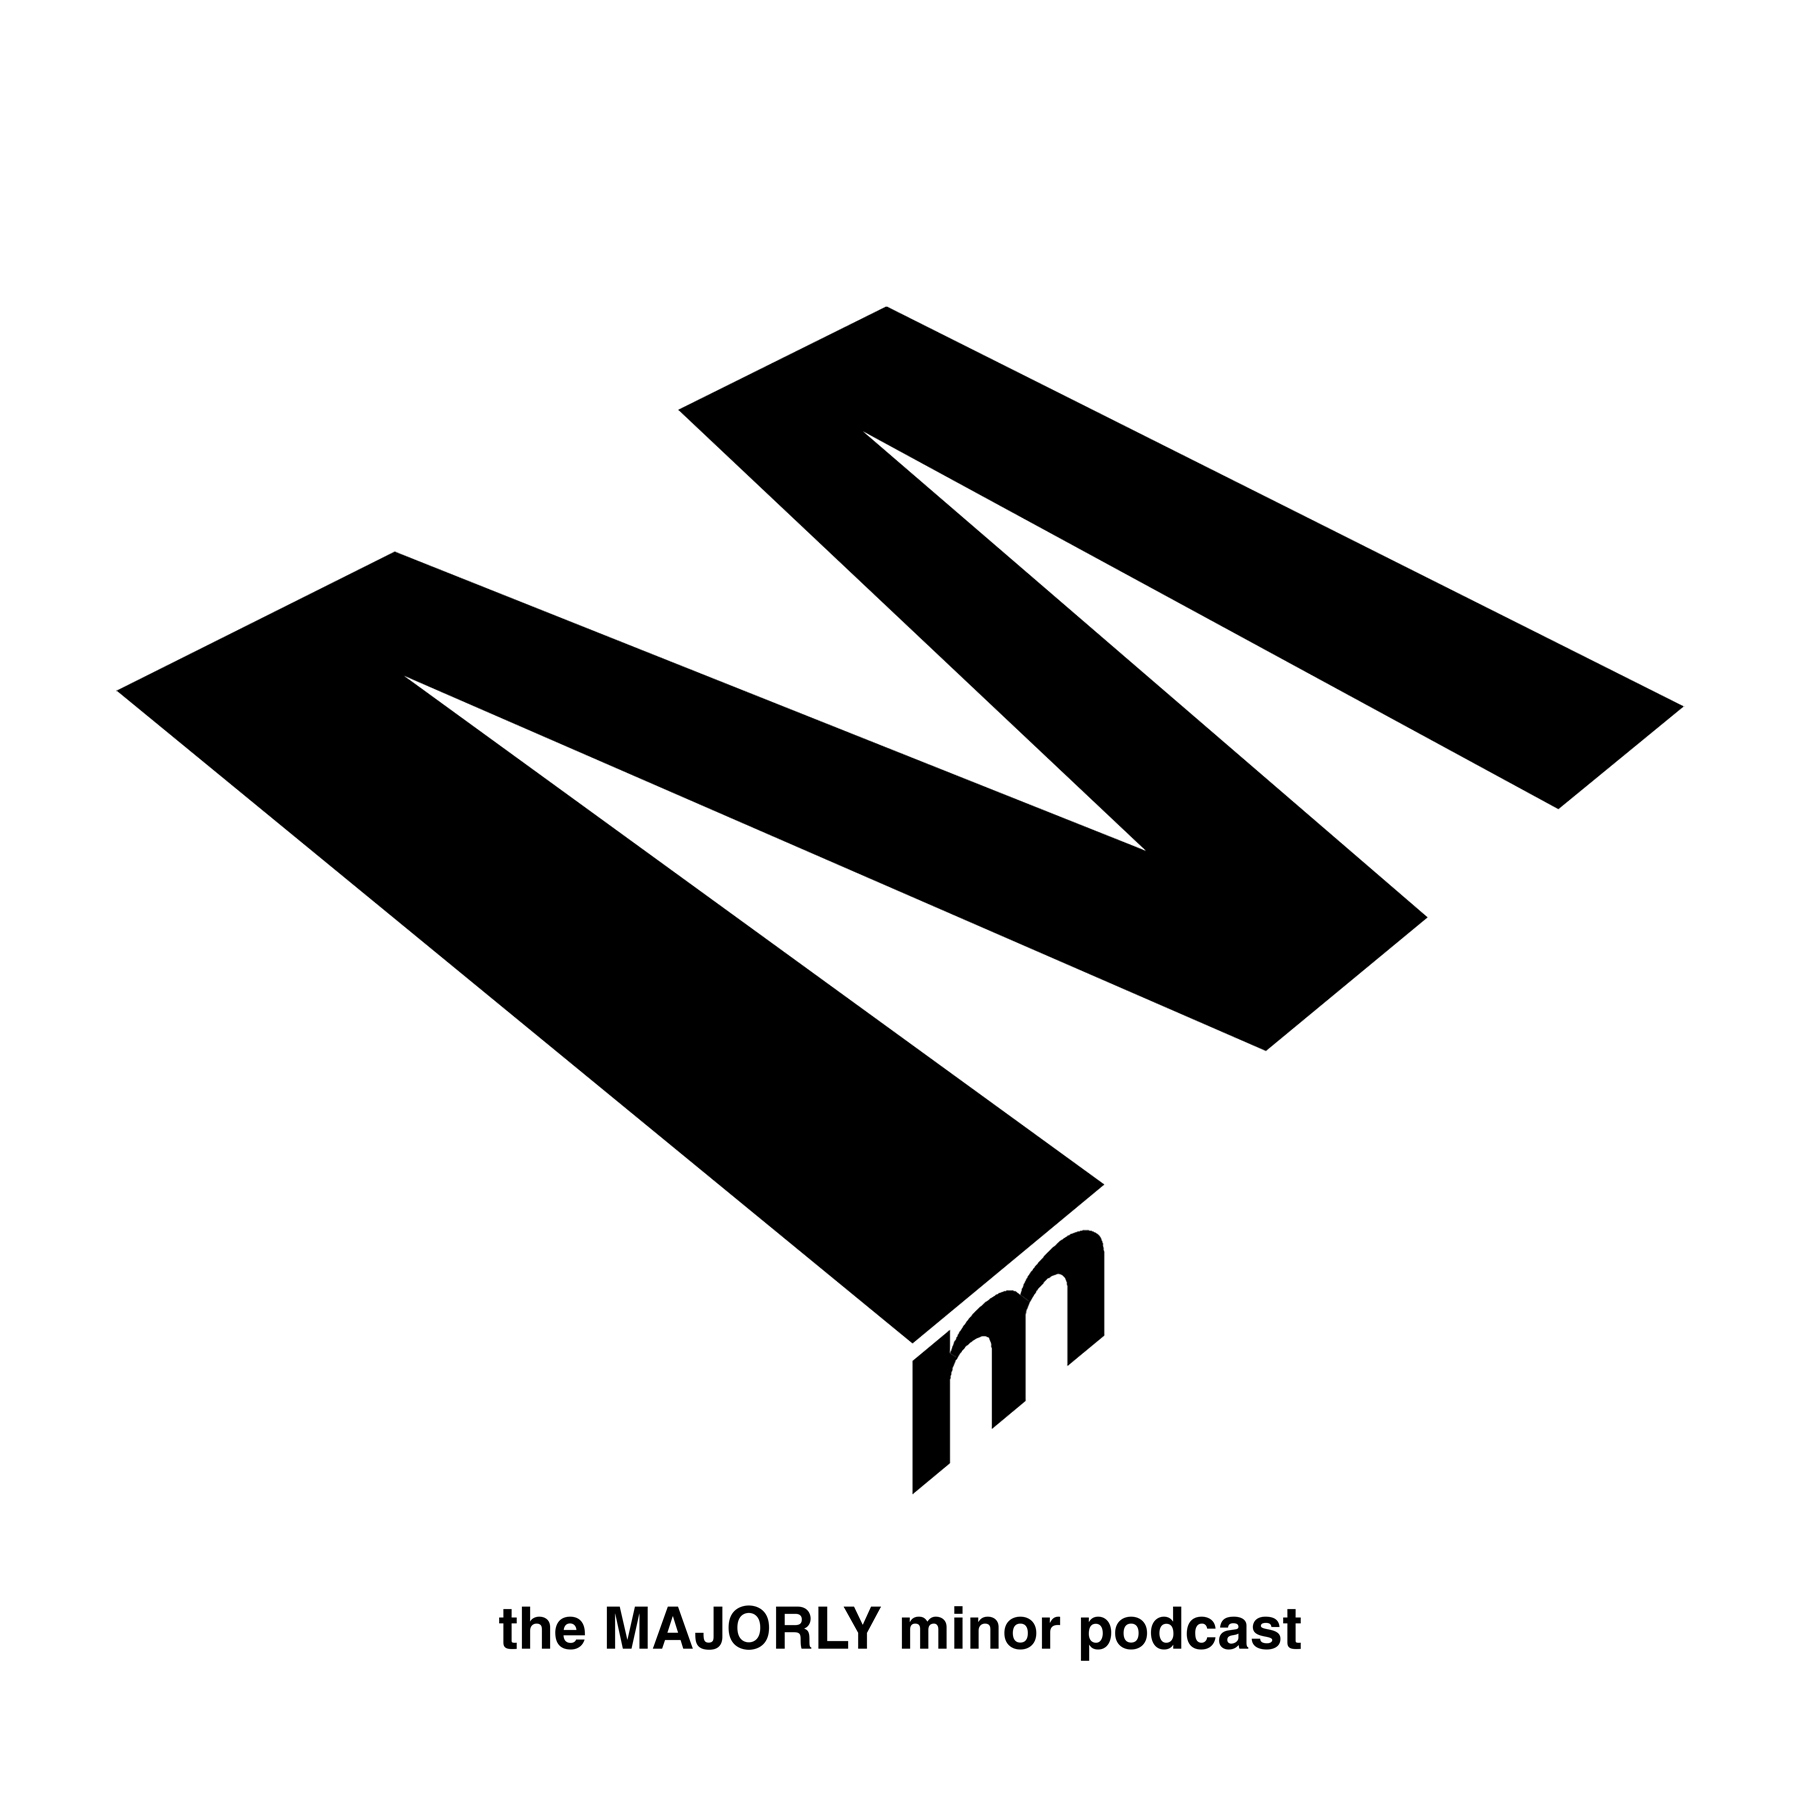 The Majorly Minor Podcast